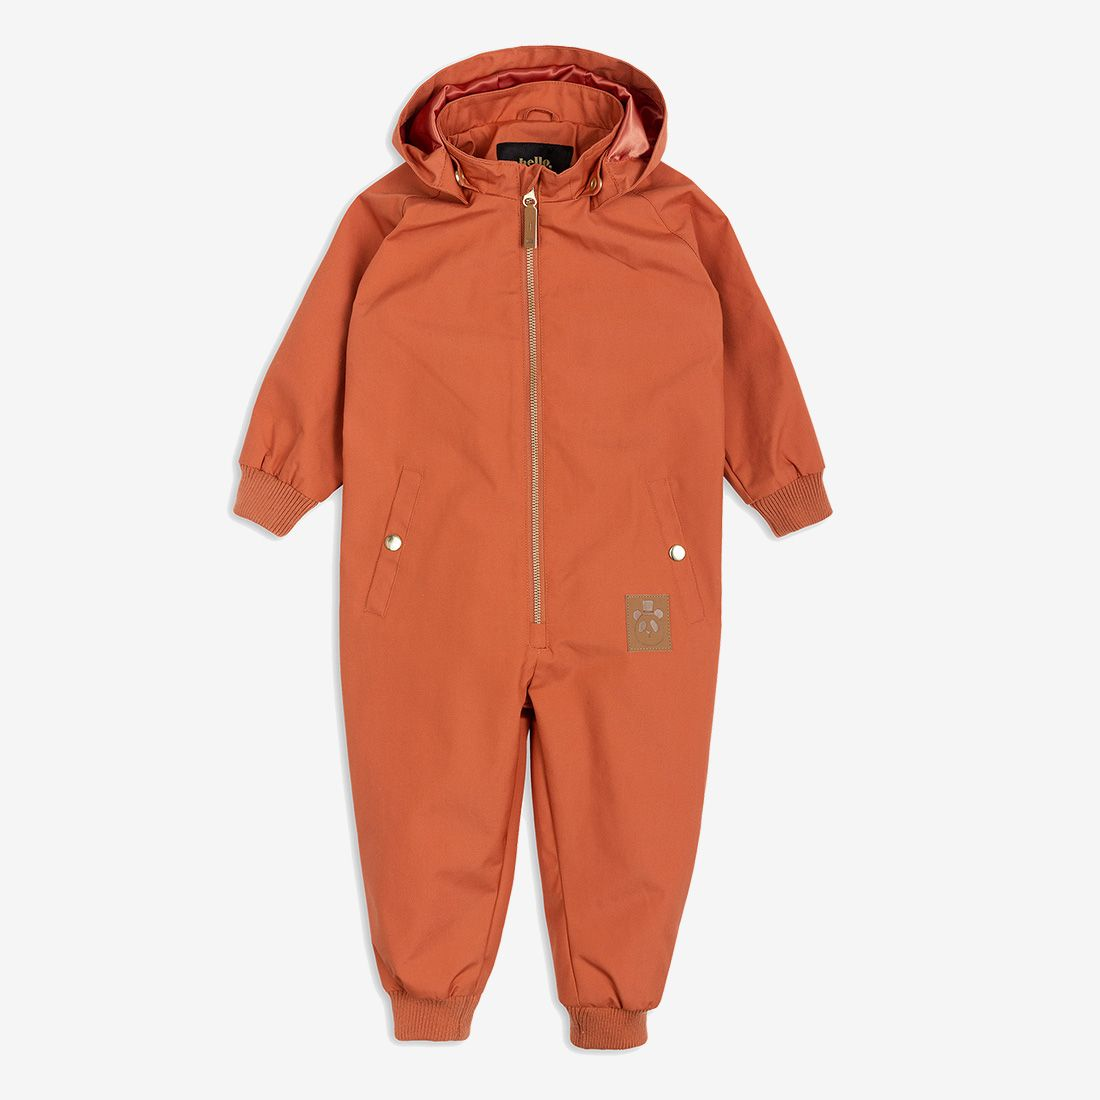 Pico Baby Overall